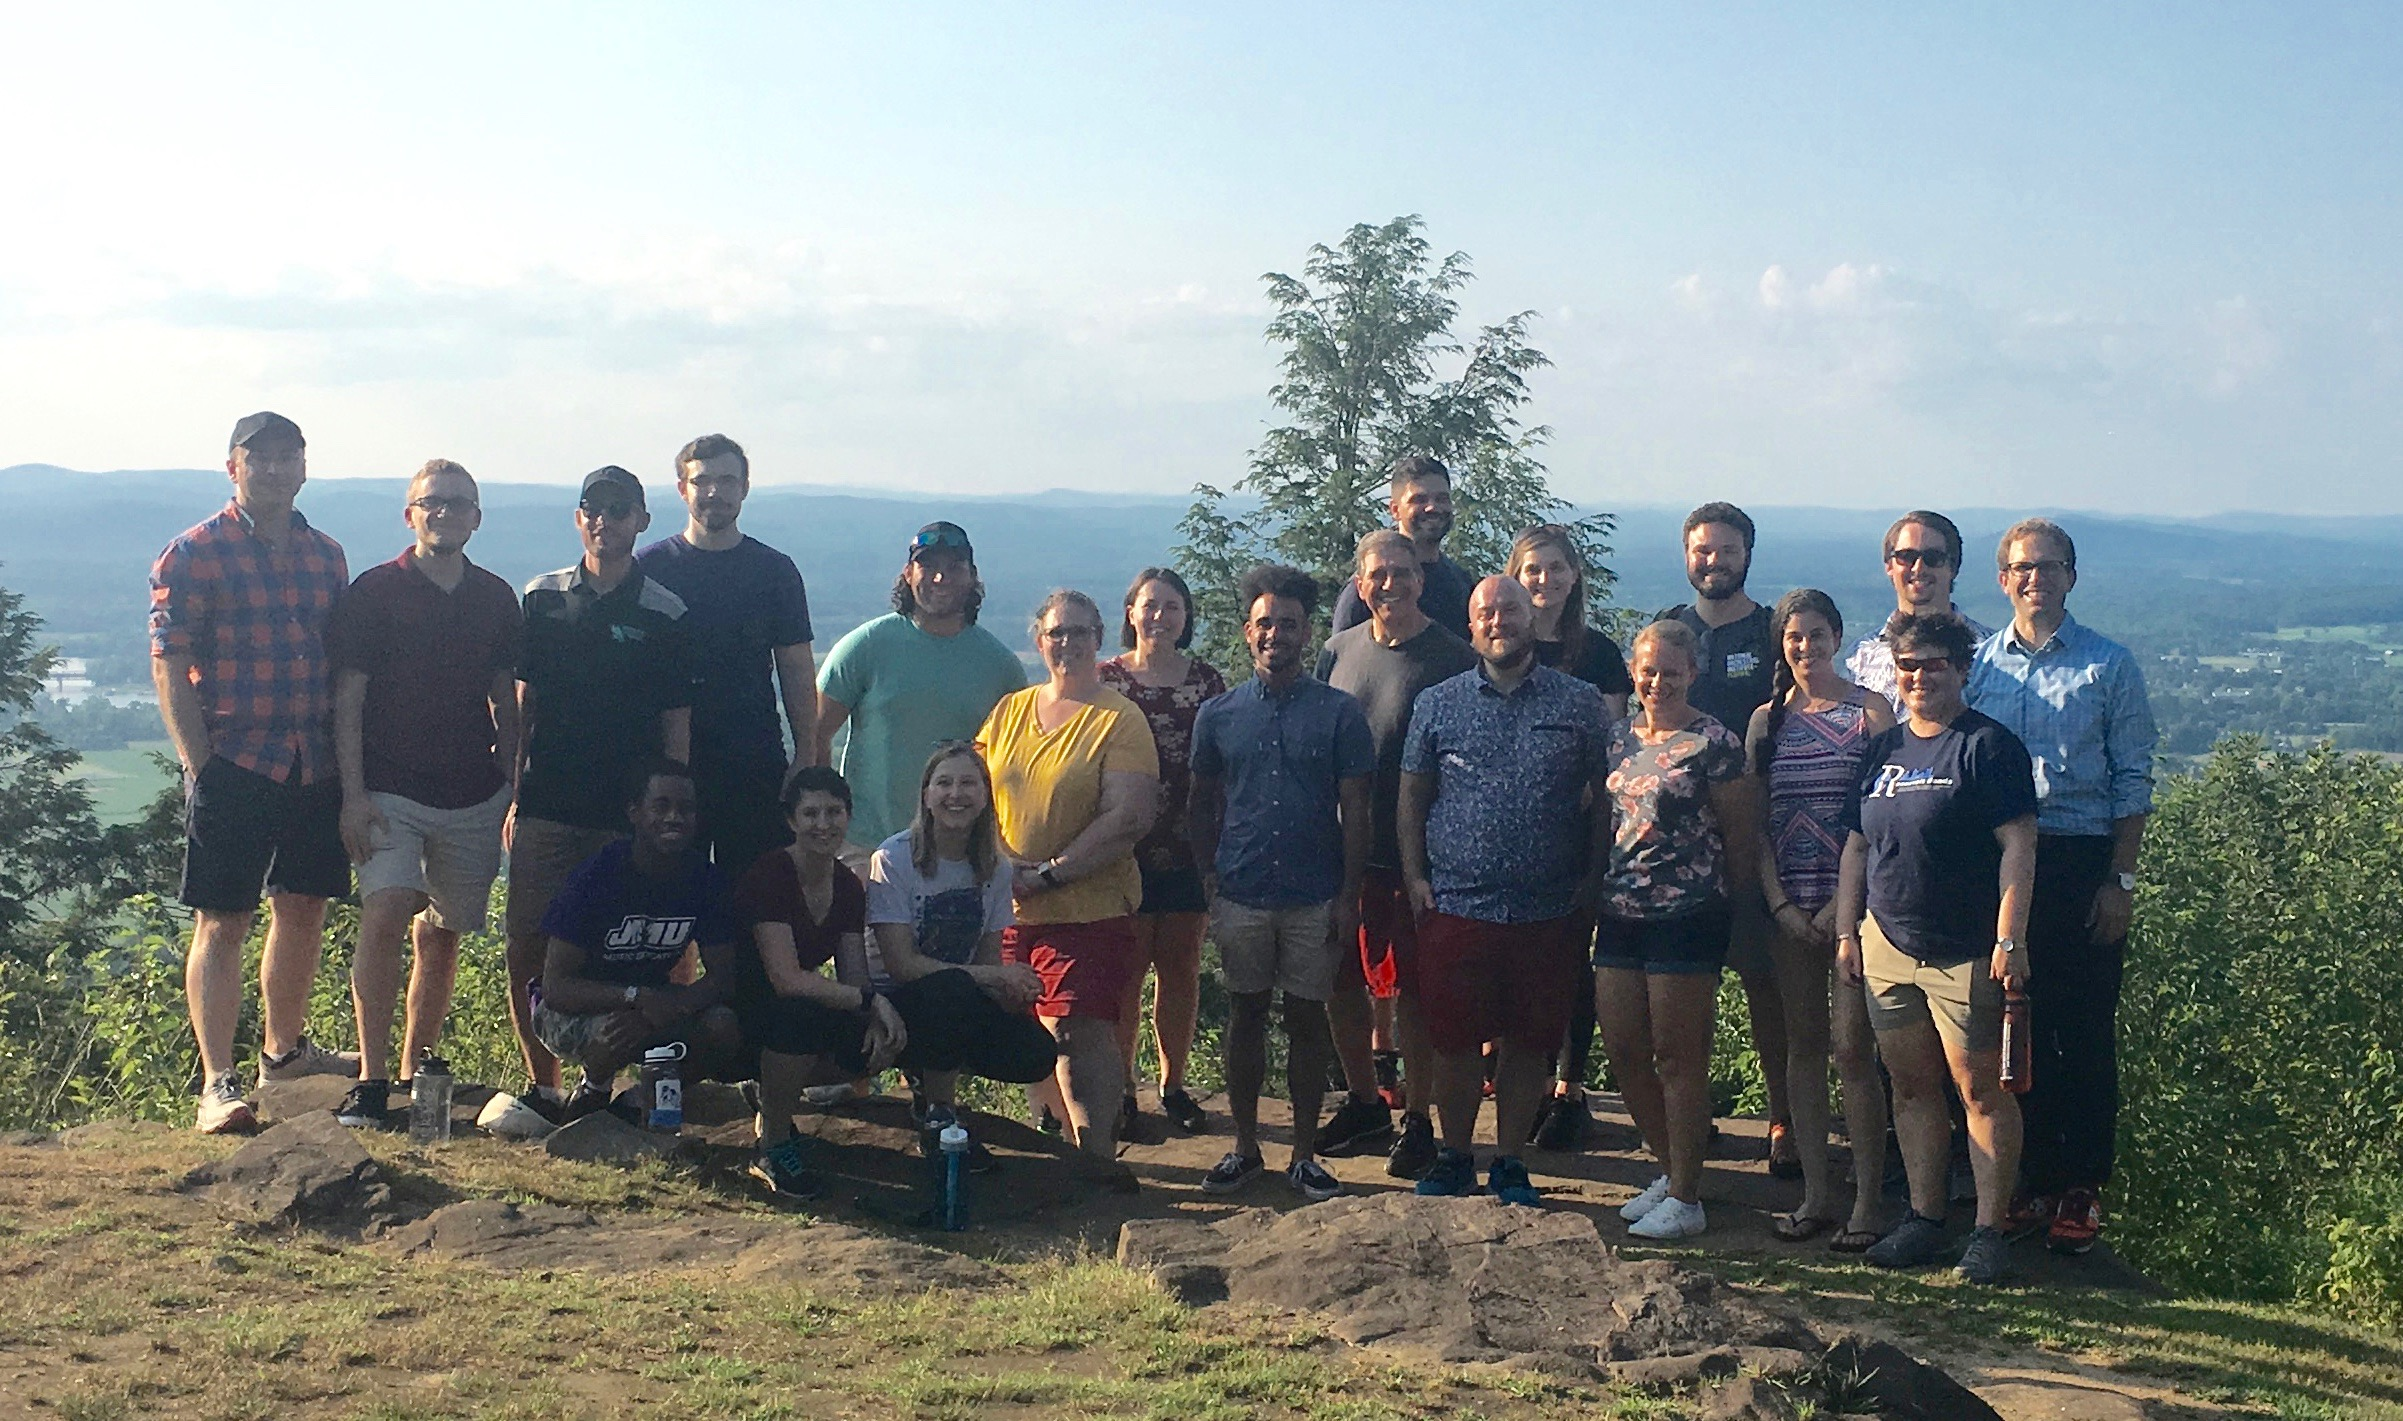 Conductors and some of the local musicians from the 2019 UMass Conducting Institute on top of Mt. Holyoke (J.A. Skinner State Park, Hadley, MA).